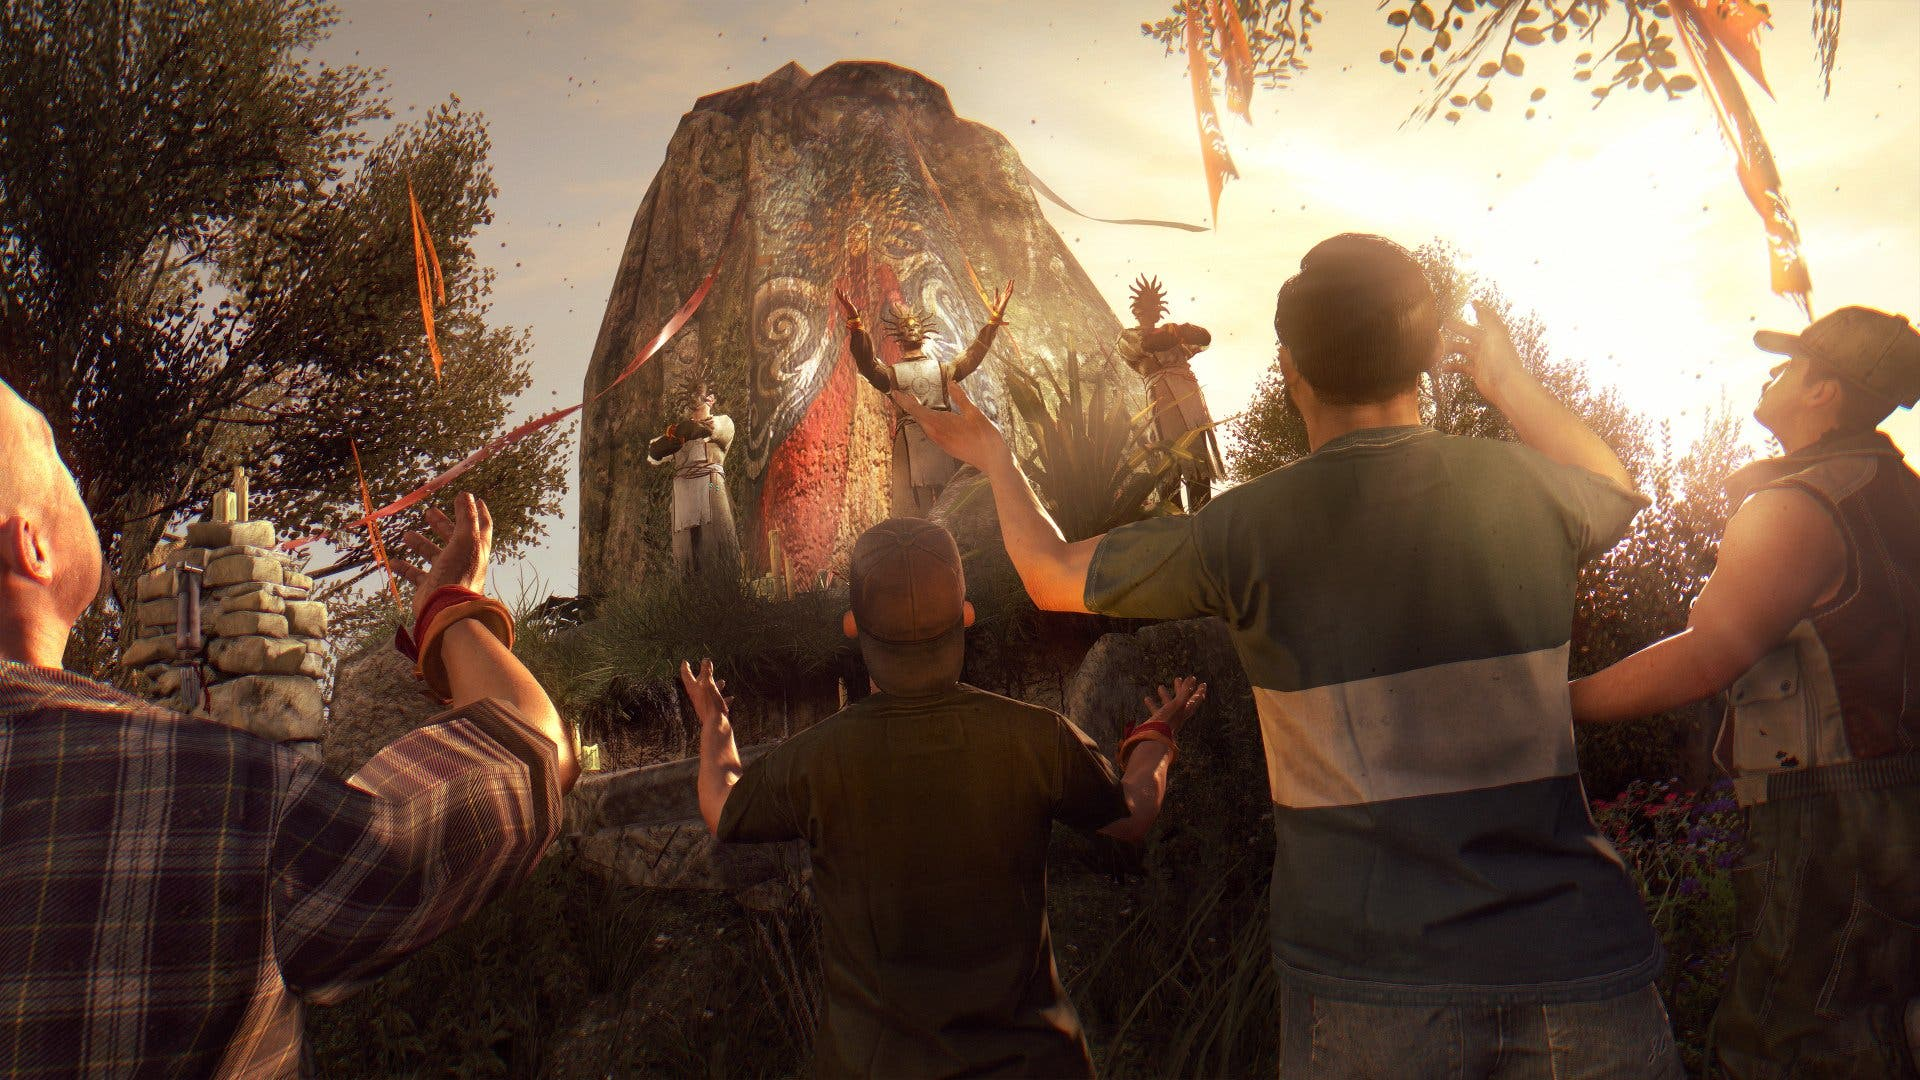 dying_light_the_following-3298514